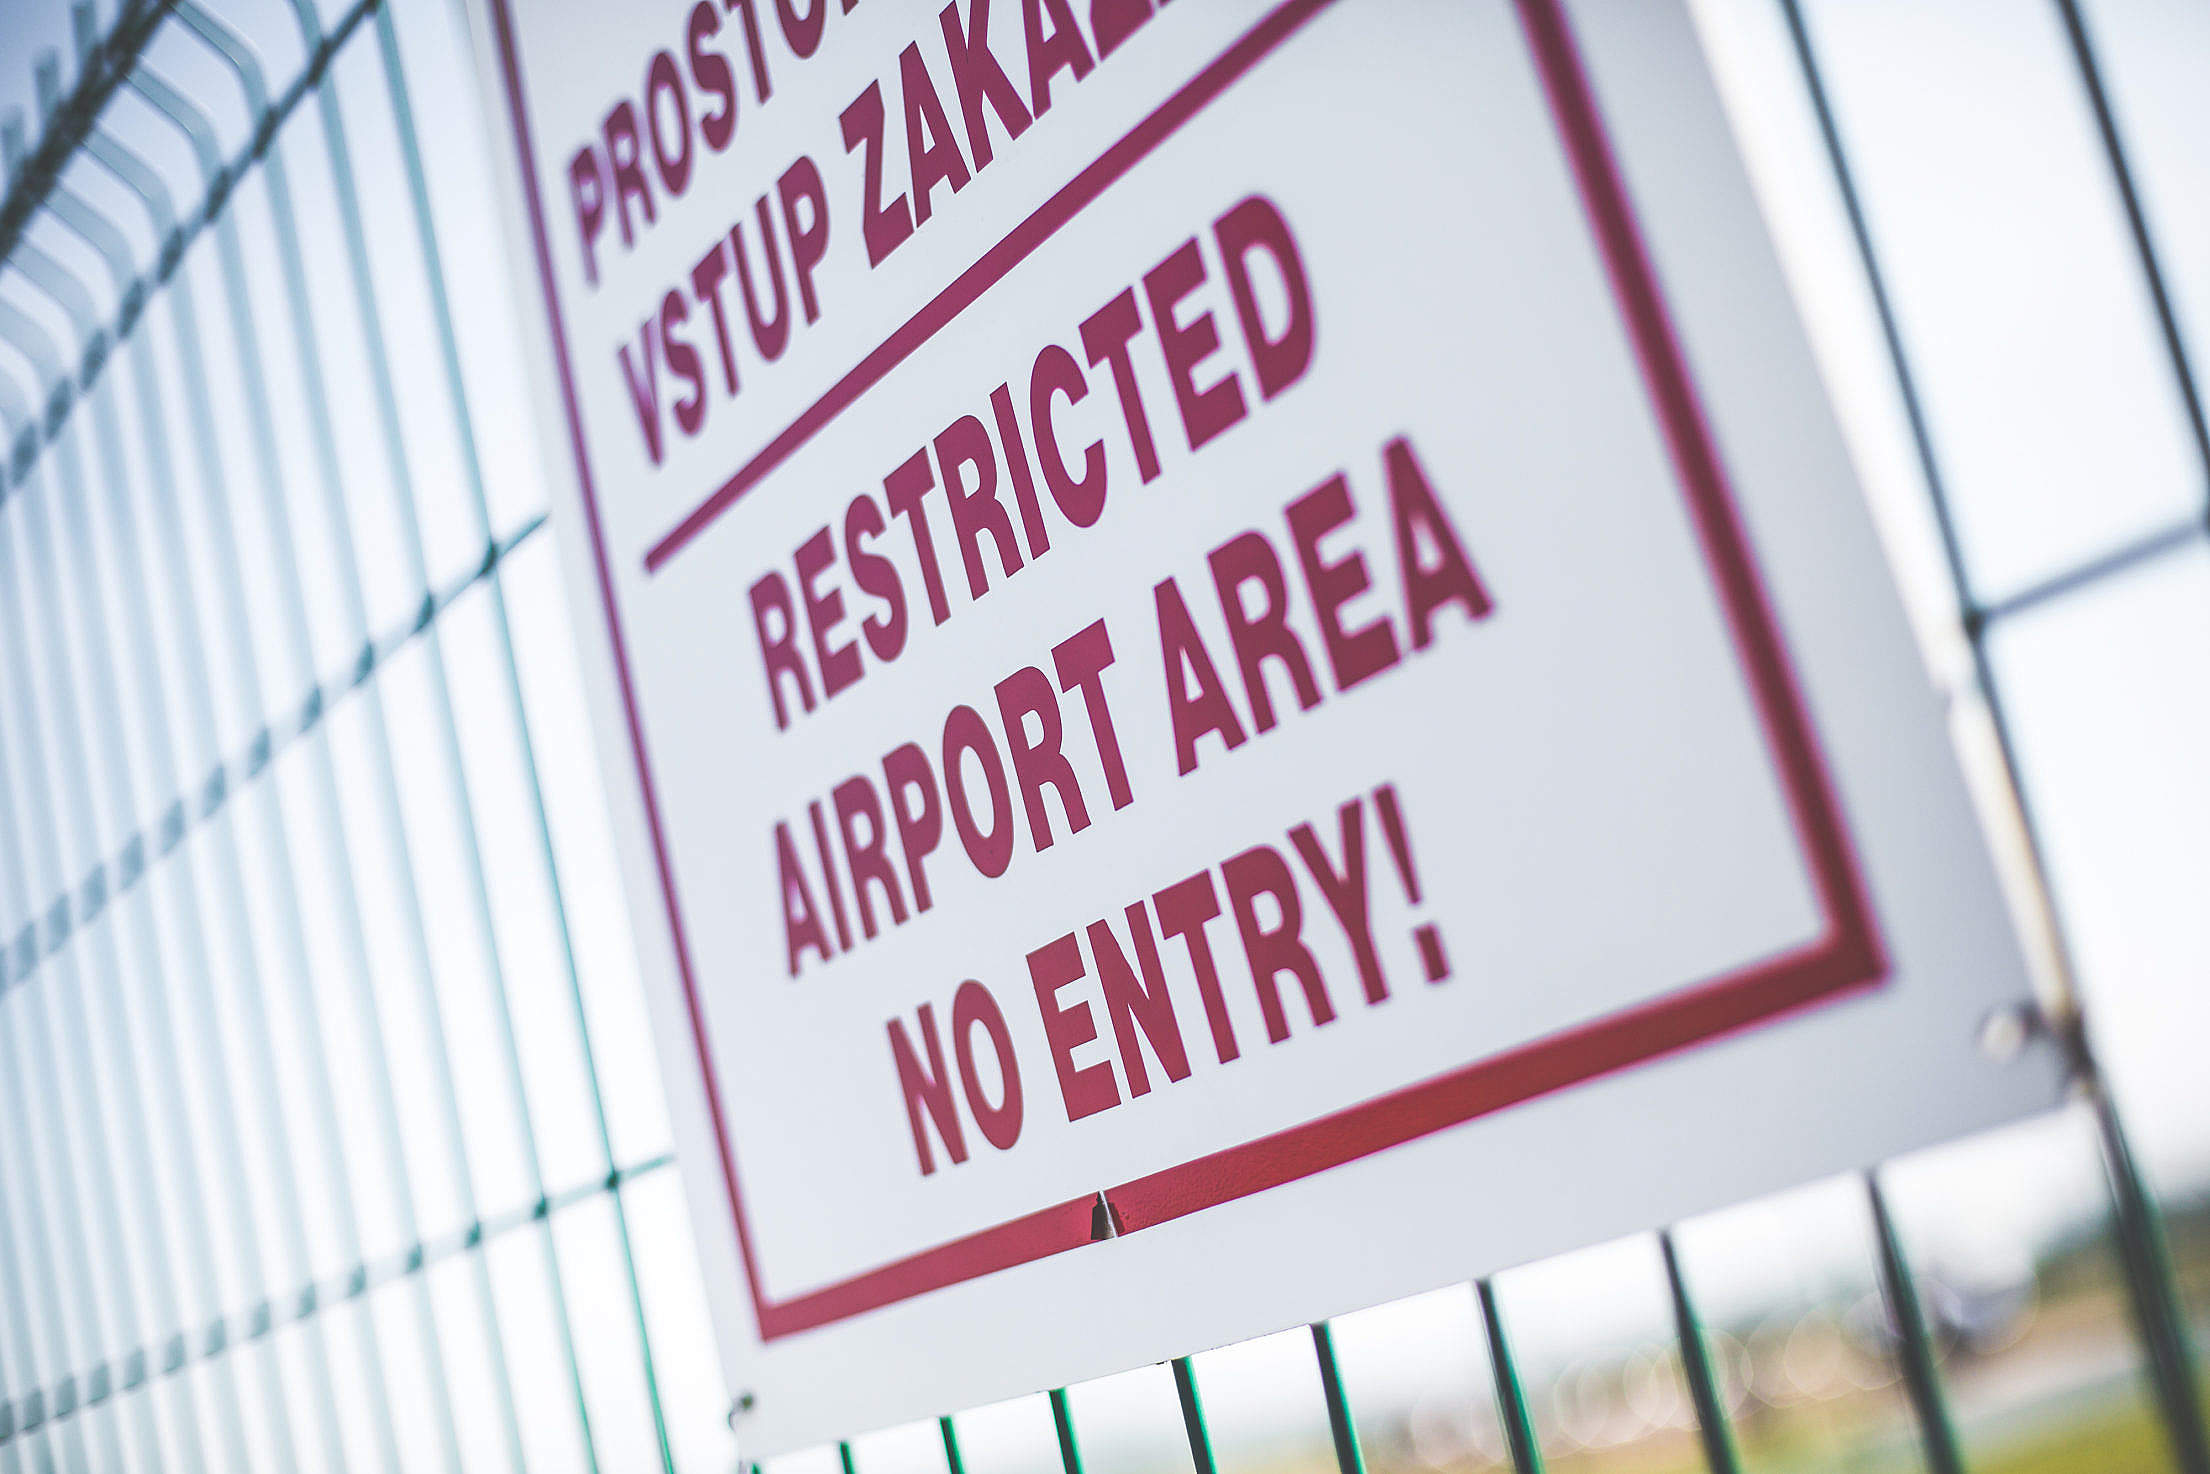 Restricted Airport Area Sign — No Entry! Free Stock Photo